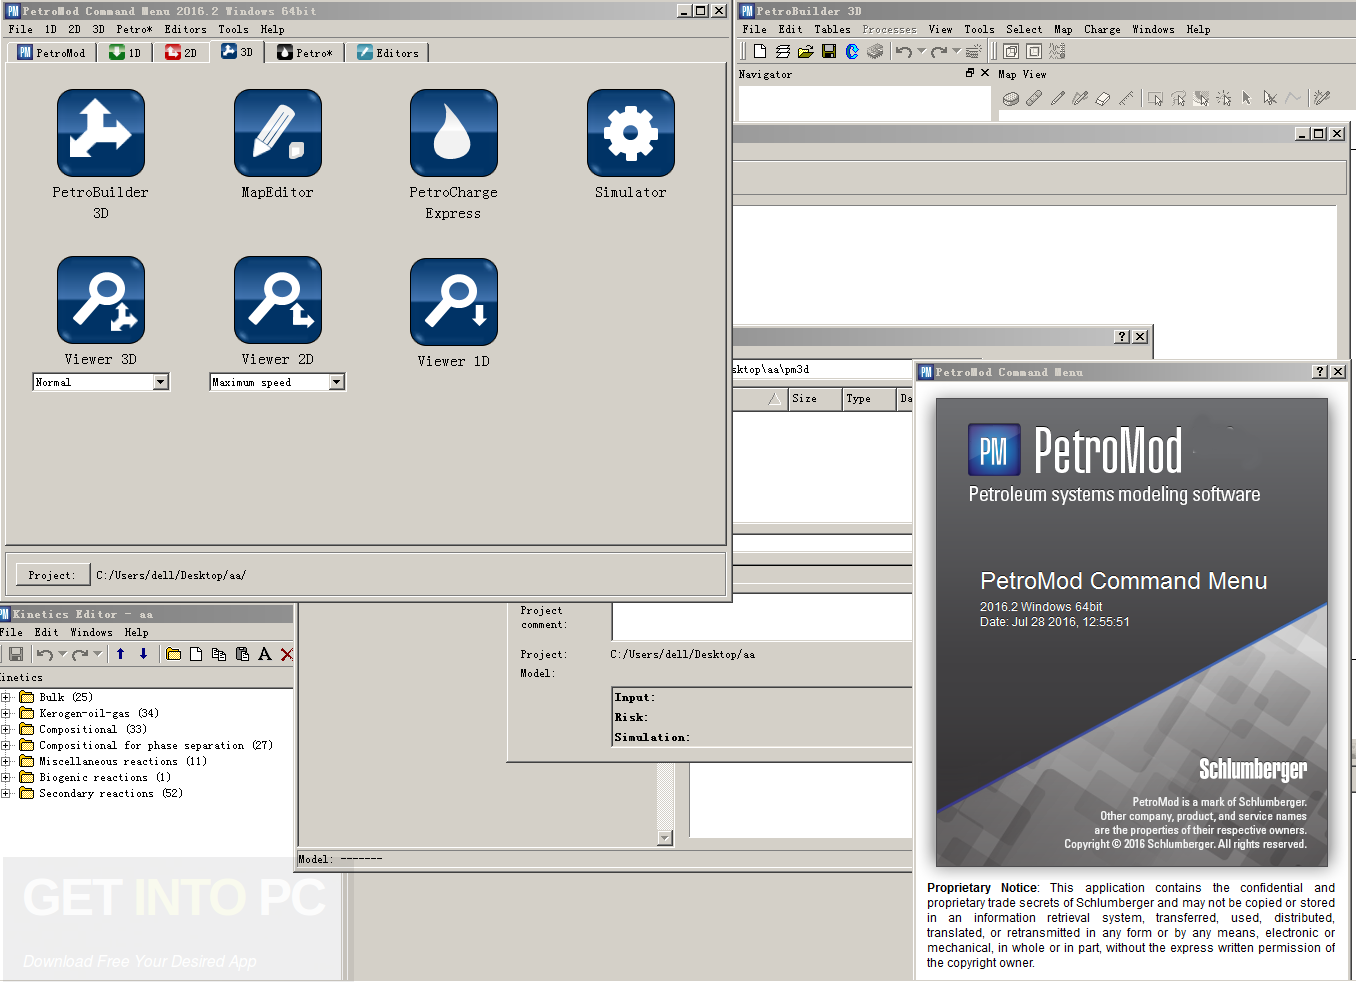 Schlumberger PetroMod 2012 Direct Link Download